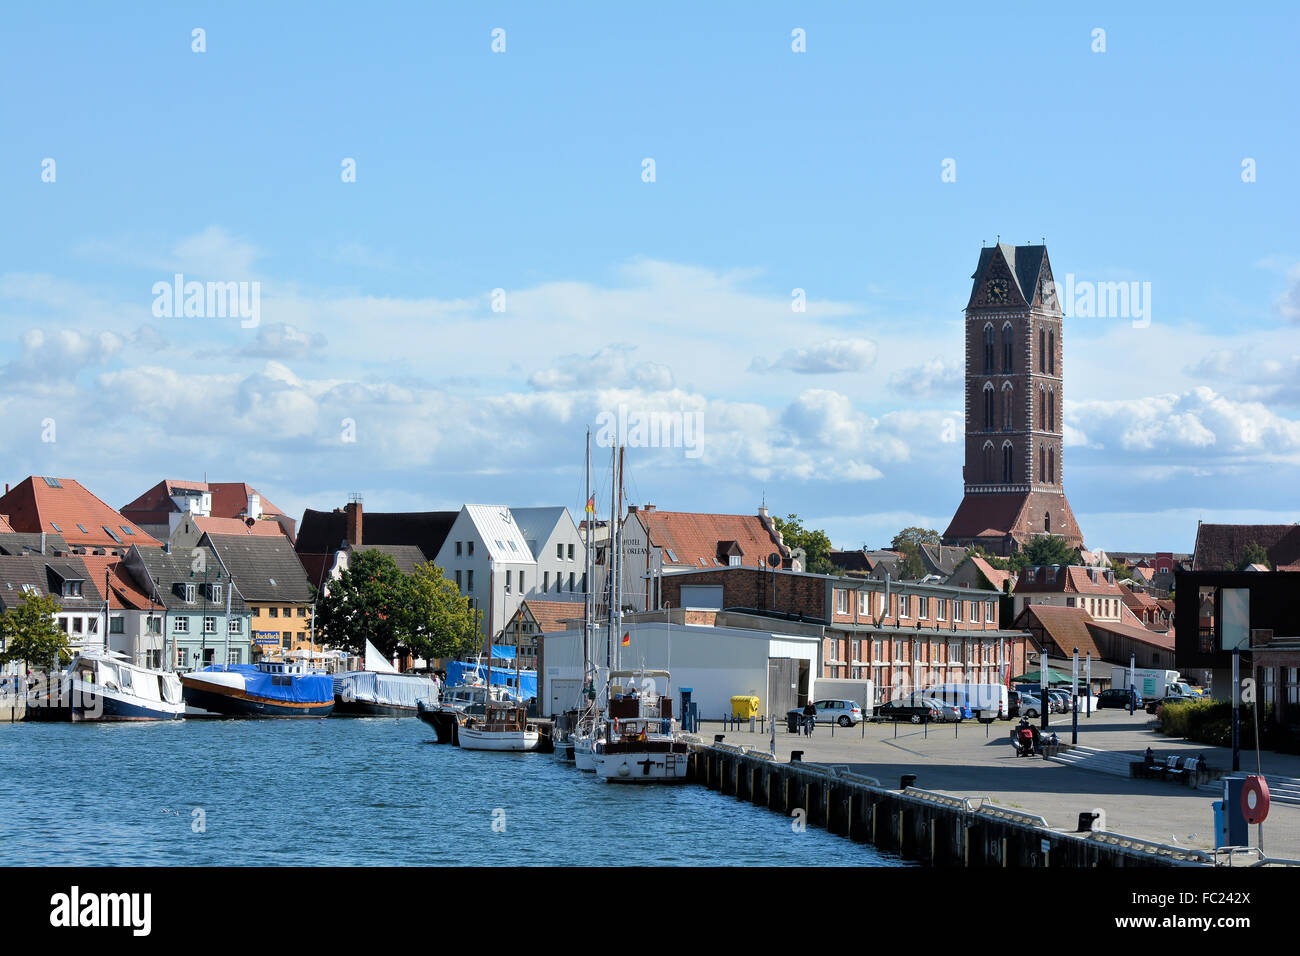 Old town of Wismar - Stock Image